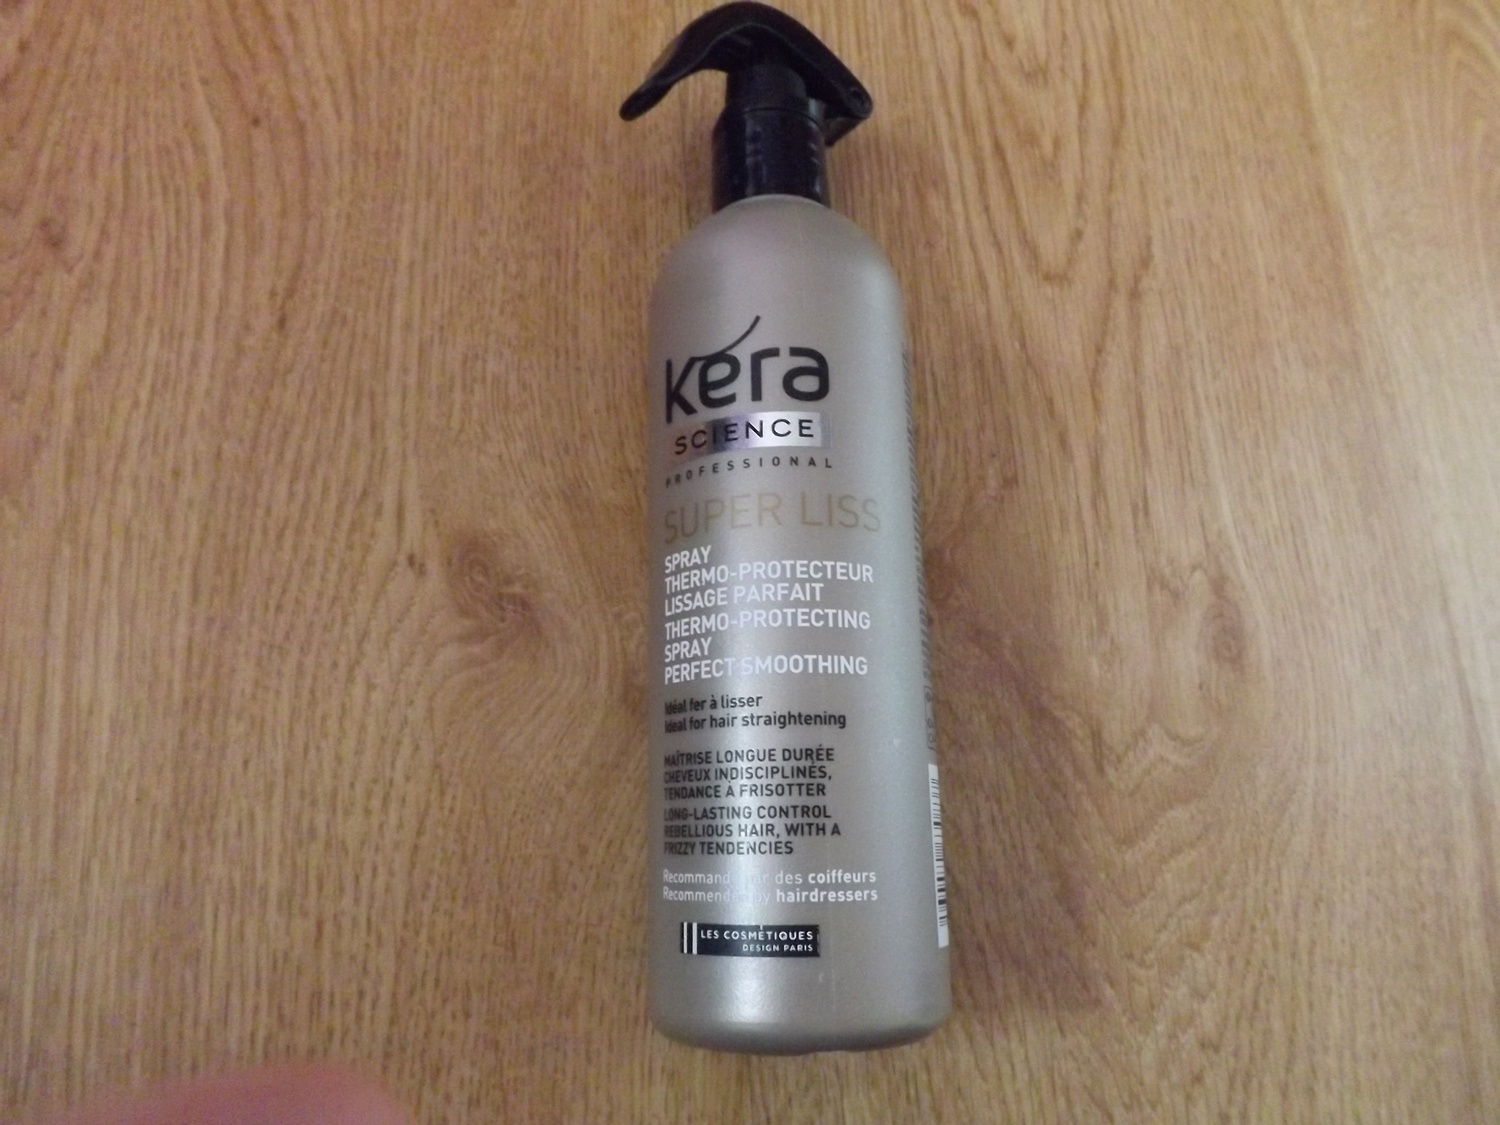 Spray Thermo-protecteur Lissage Parfait - Super Liss Kera Science